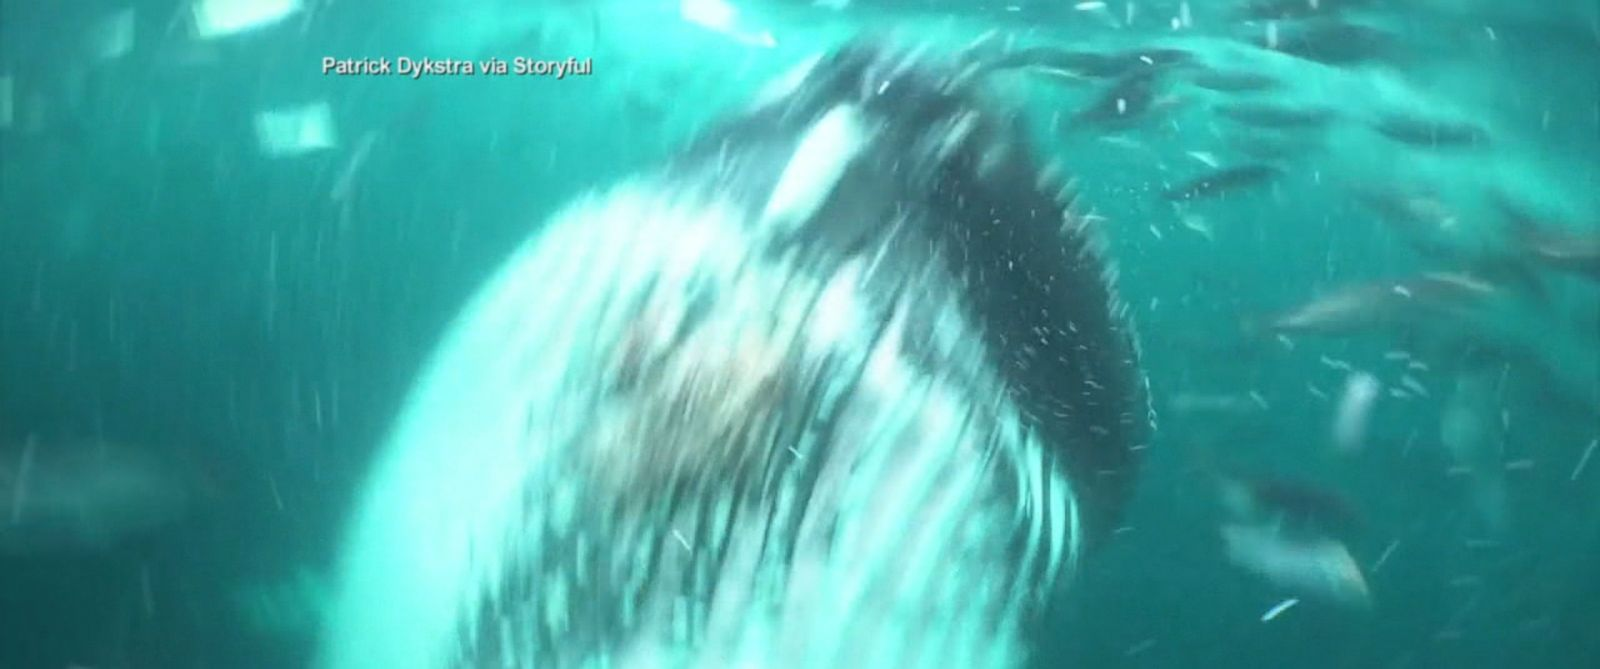 PHOTO: Patrick Dykstra said he had been swimming with orcas in the Barents Sea off the coast of Norway on Nov. 13, 2016, when a humpback whale came within touching distance.